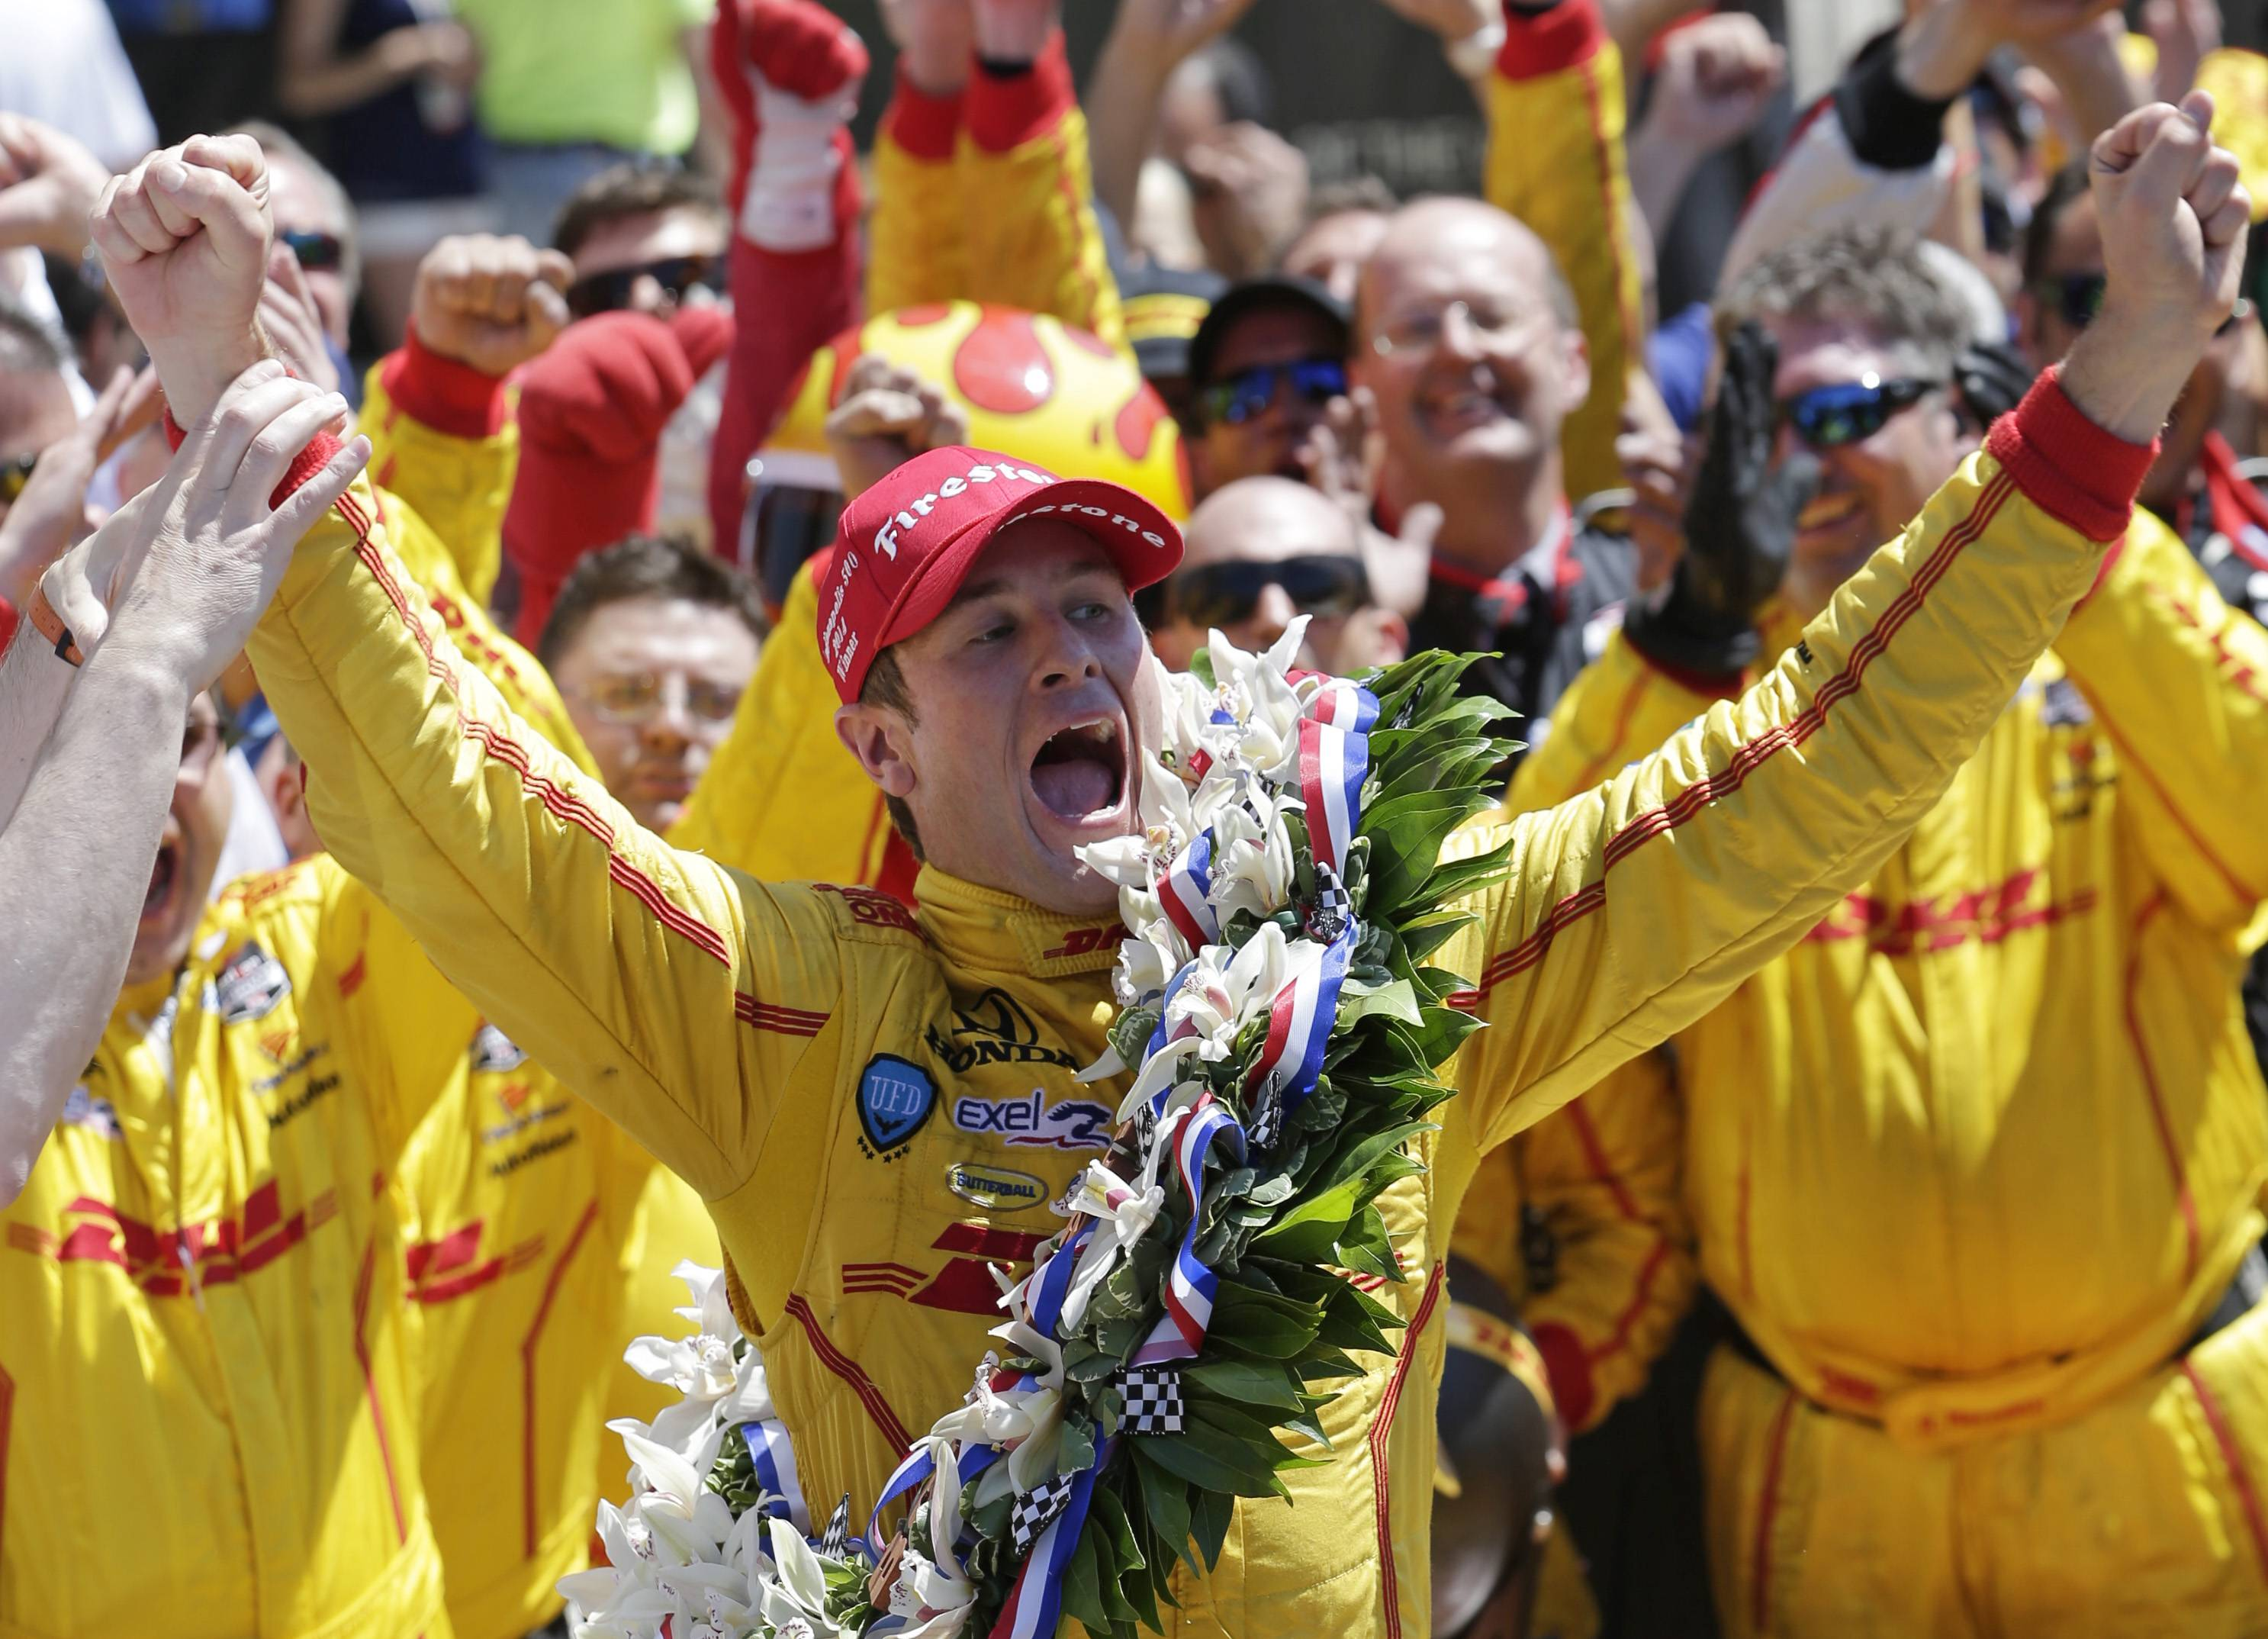 Ryan Hunter-Reay celebrates winning the 98th running of the Indianapolis 500 IndyCar auto race.